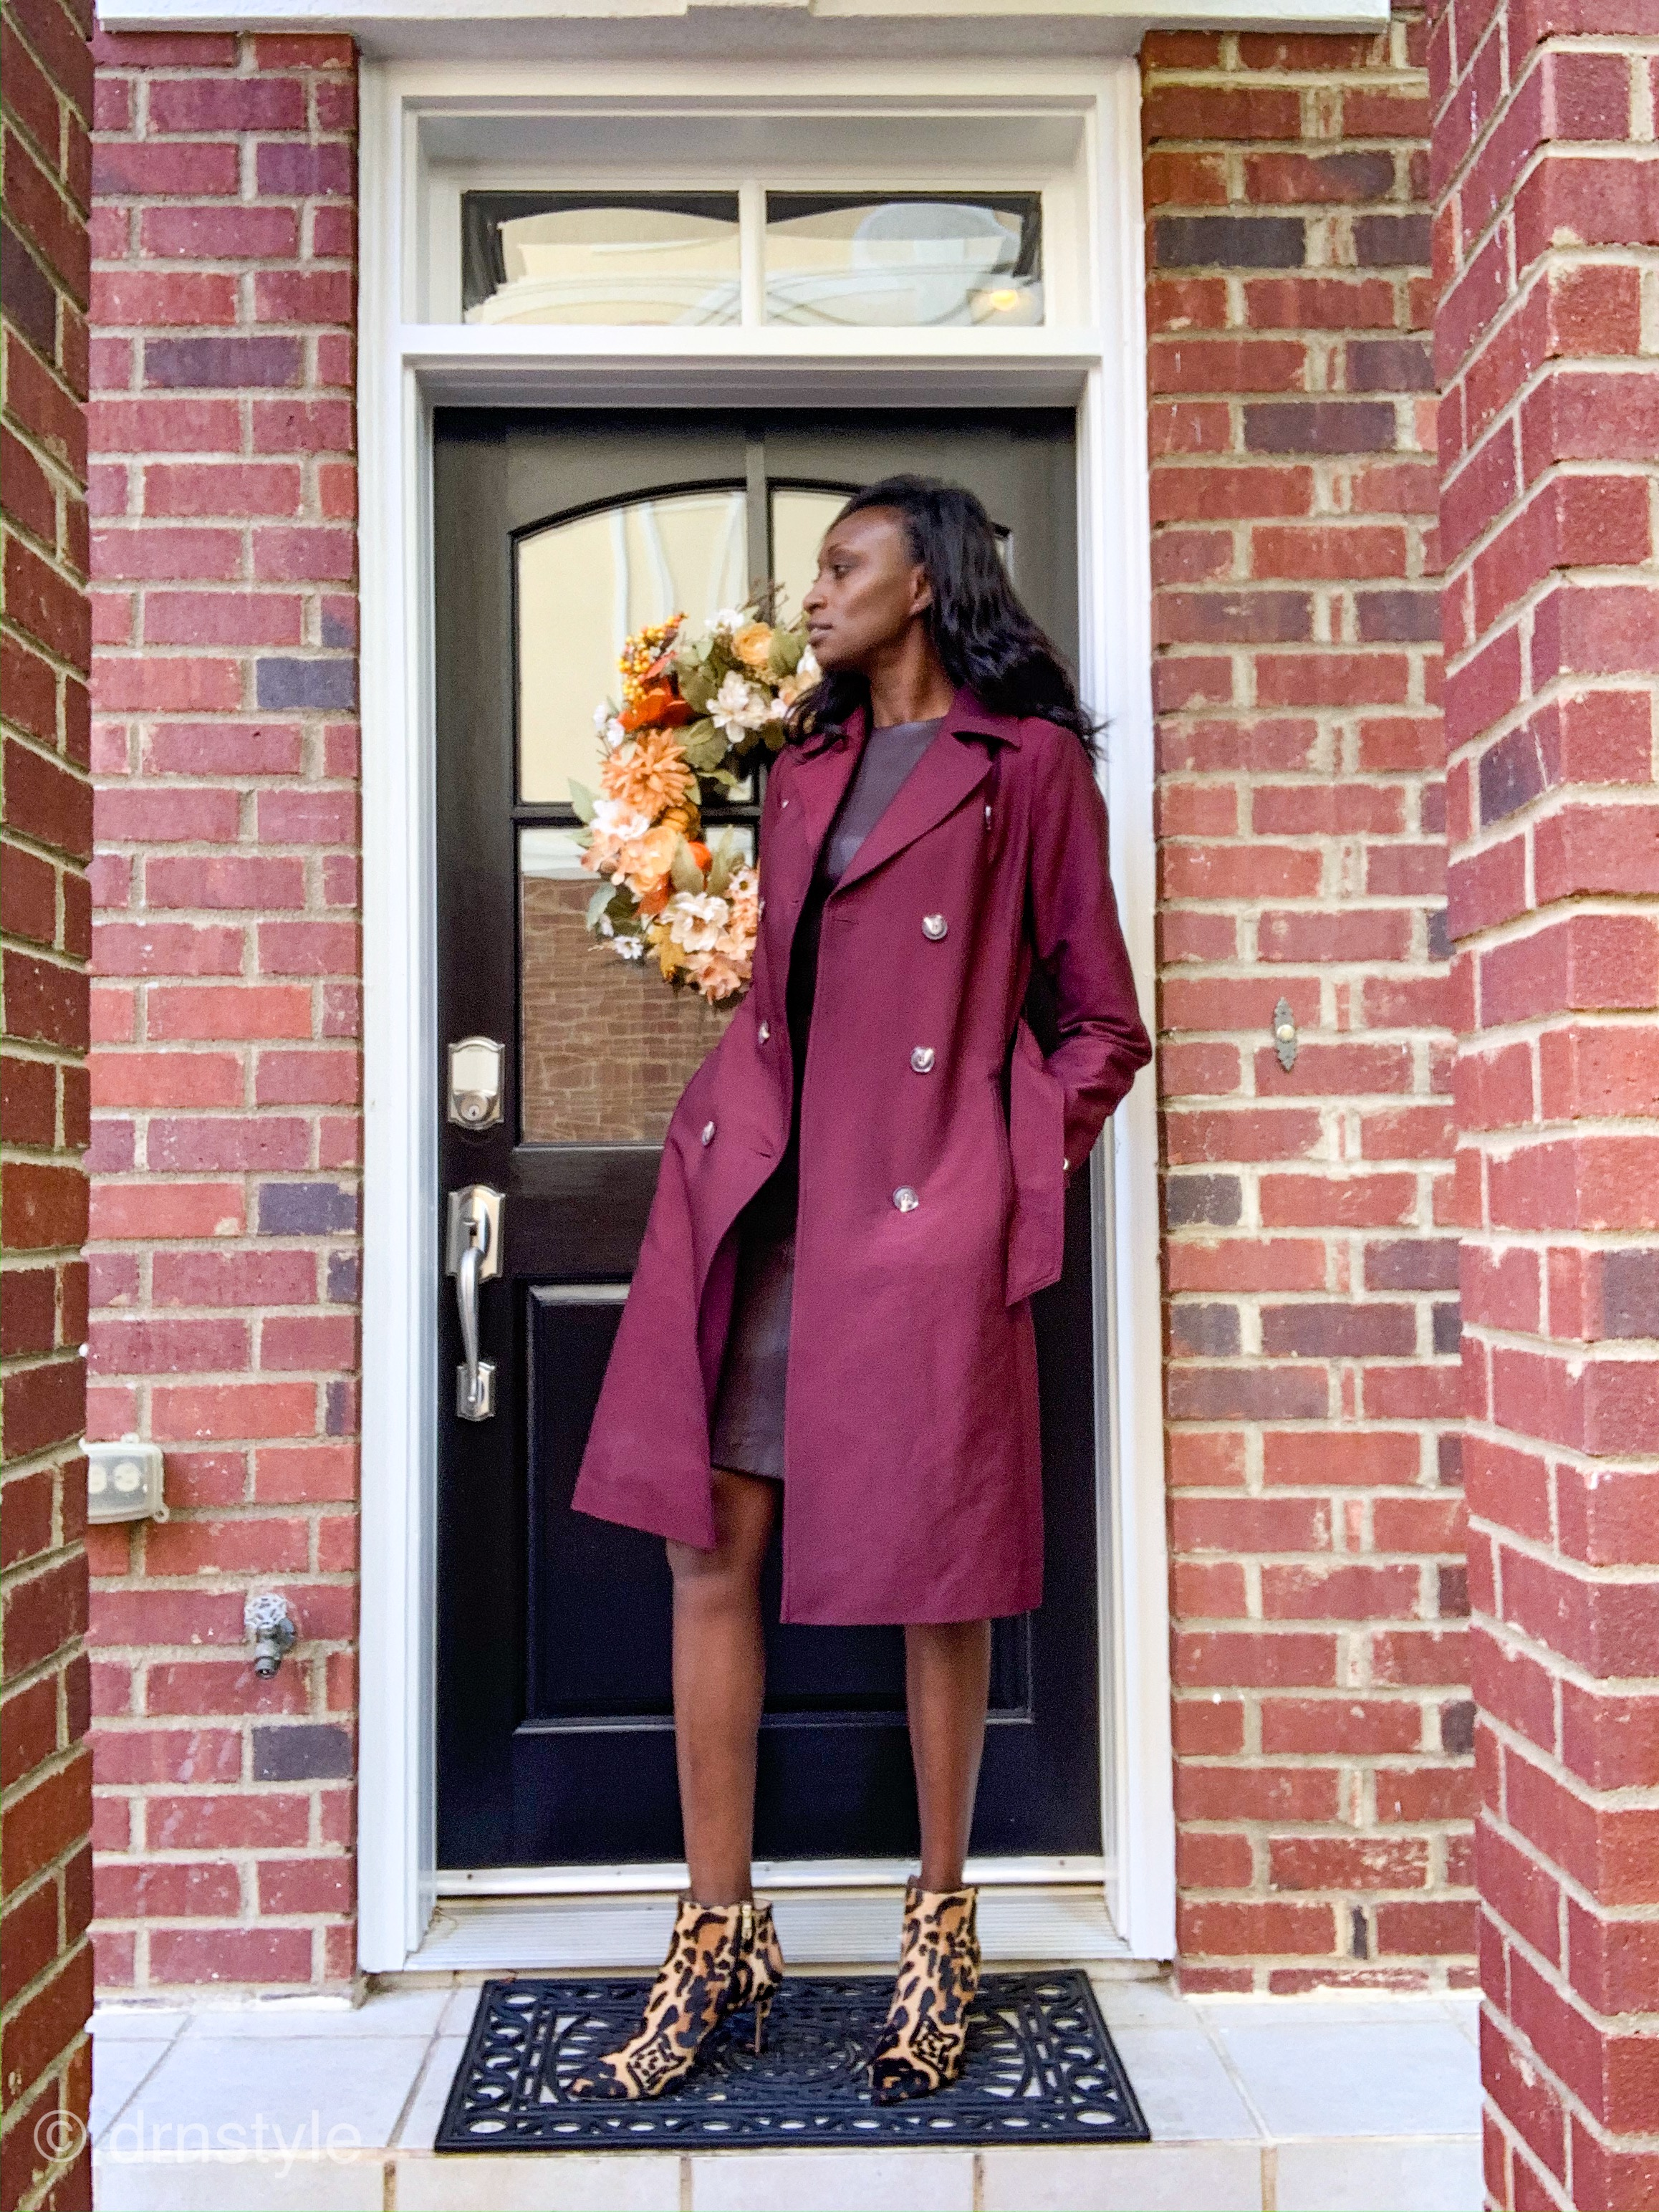 Leather knee-length dress by Vince in Dahlia Wine, worn with Wine colored trench coat from Long Tall Sally and leopard print ankle boots from Nordstrom.